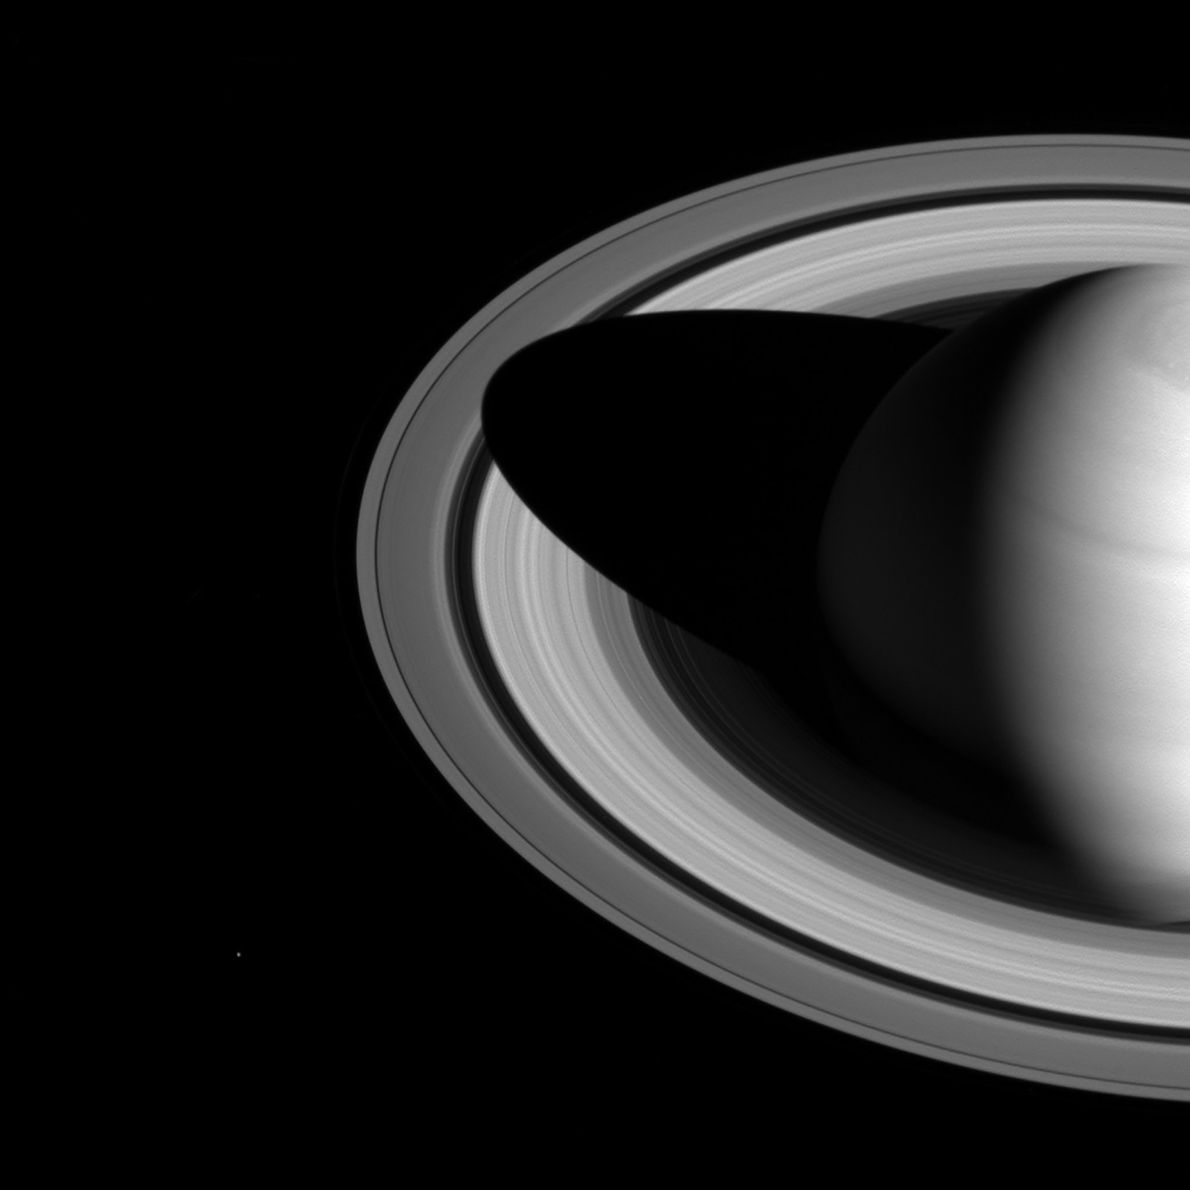 Saturn casts a deep shadow on its rings in this Cassini image.